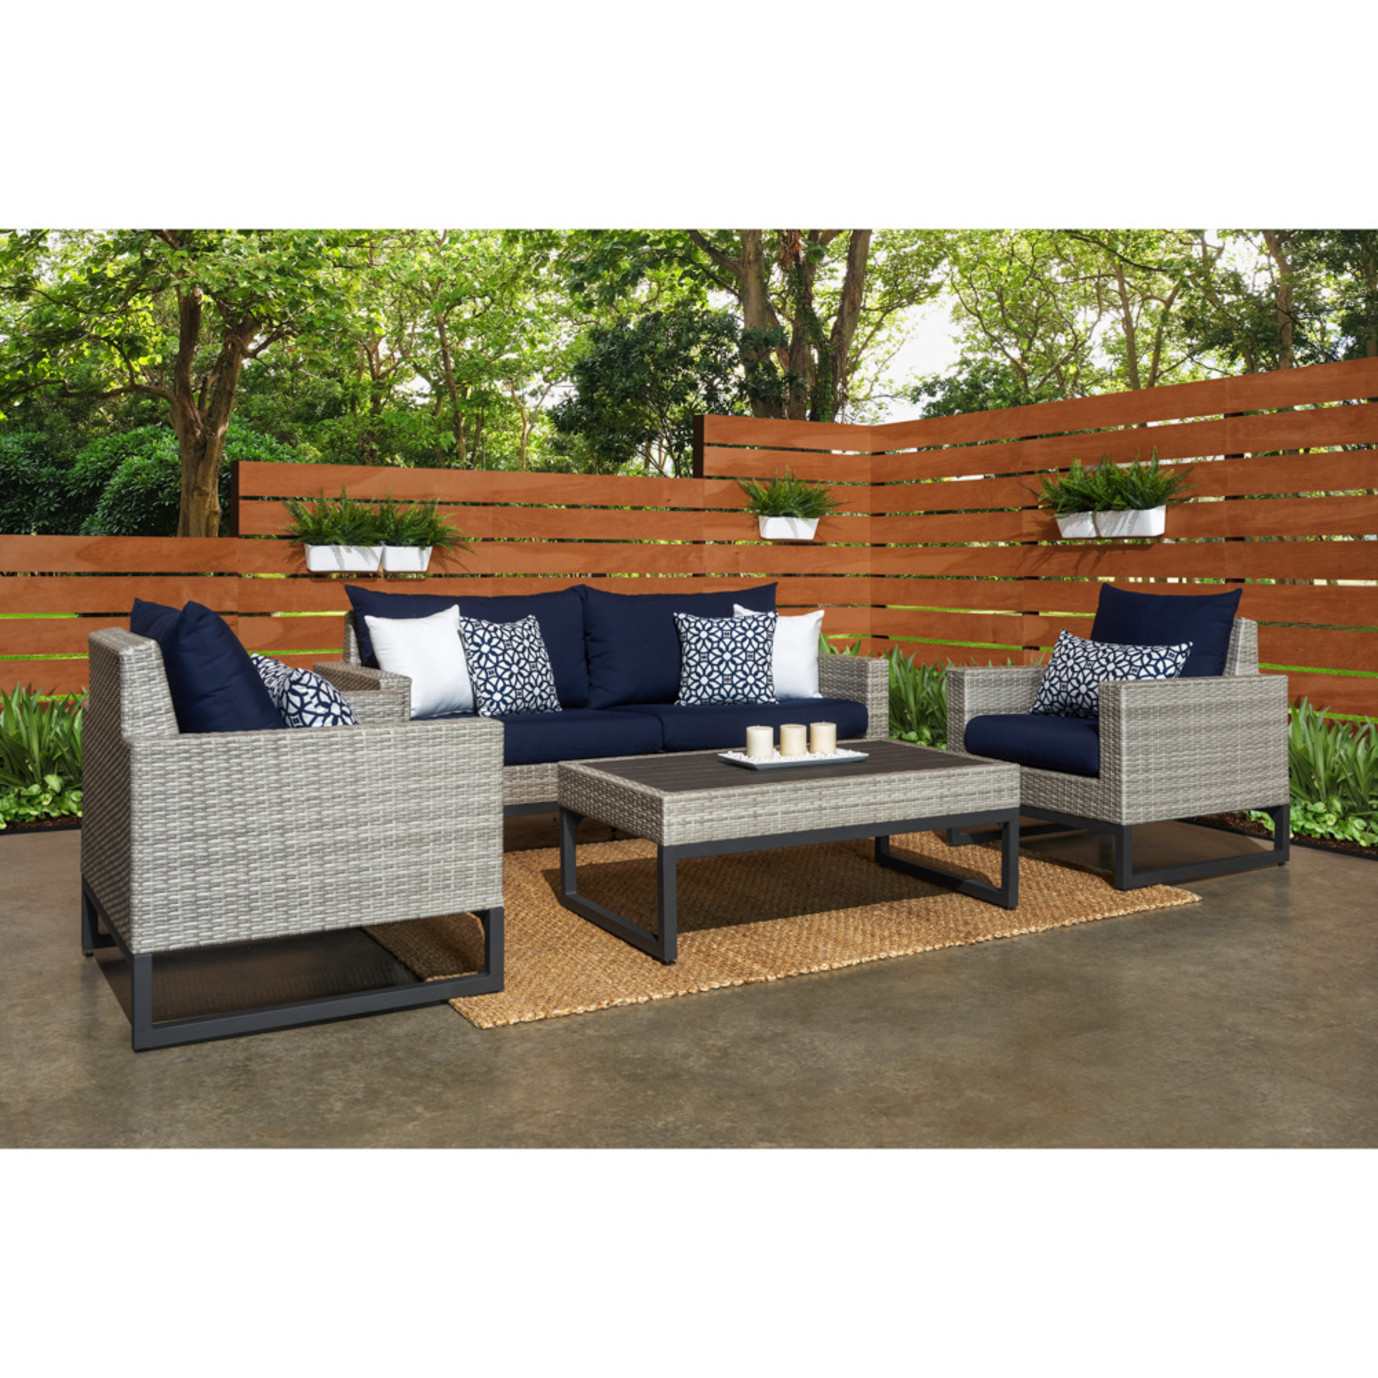 Milo™ Gray 4pc Seating Set - Navy Blue